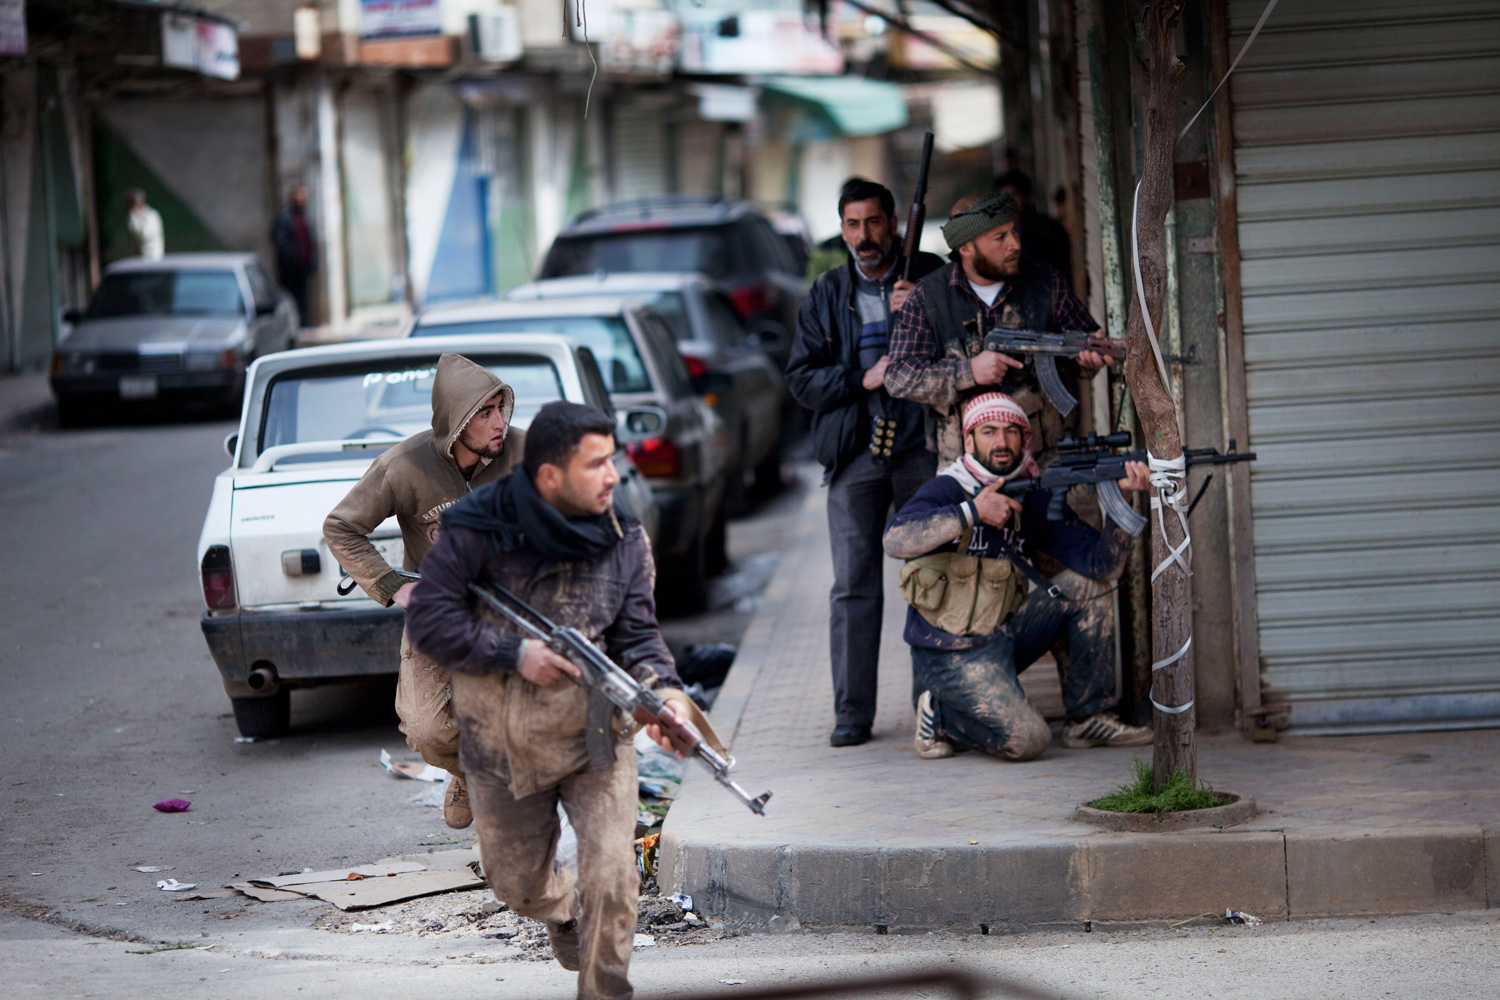 March 11, 2012. Syrian rebels take position during clashes with government forces in Idlib, north Syria.